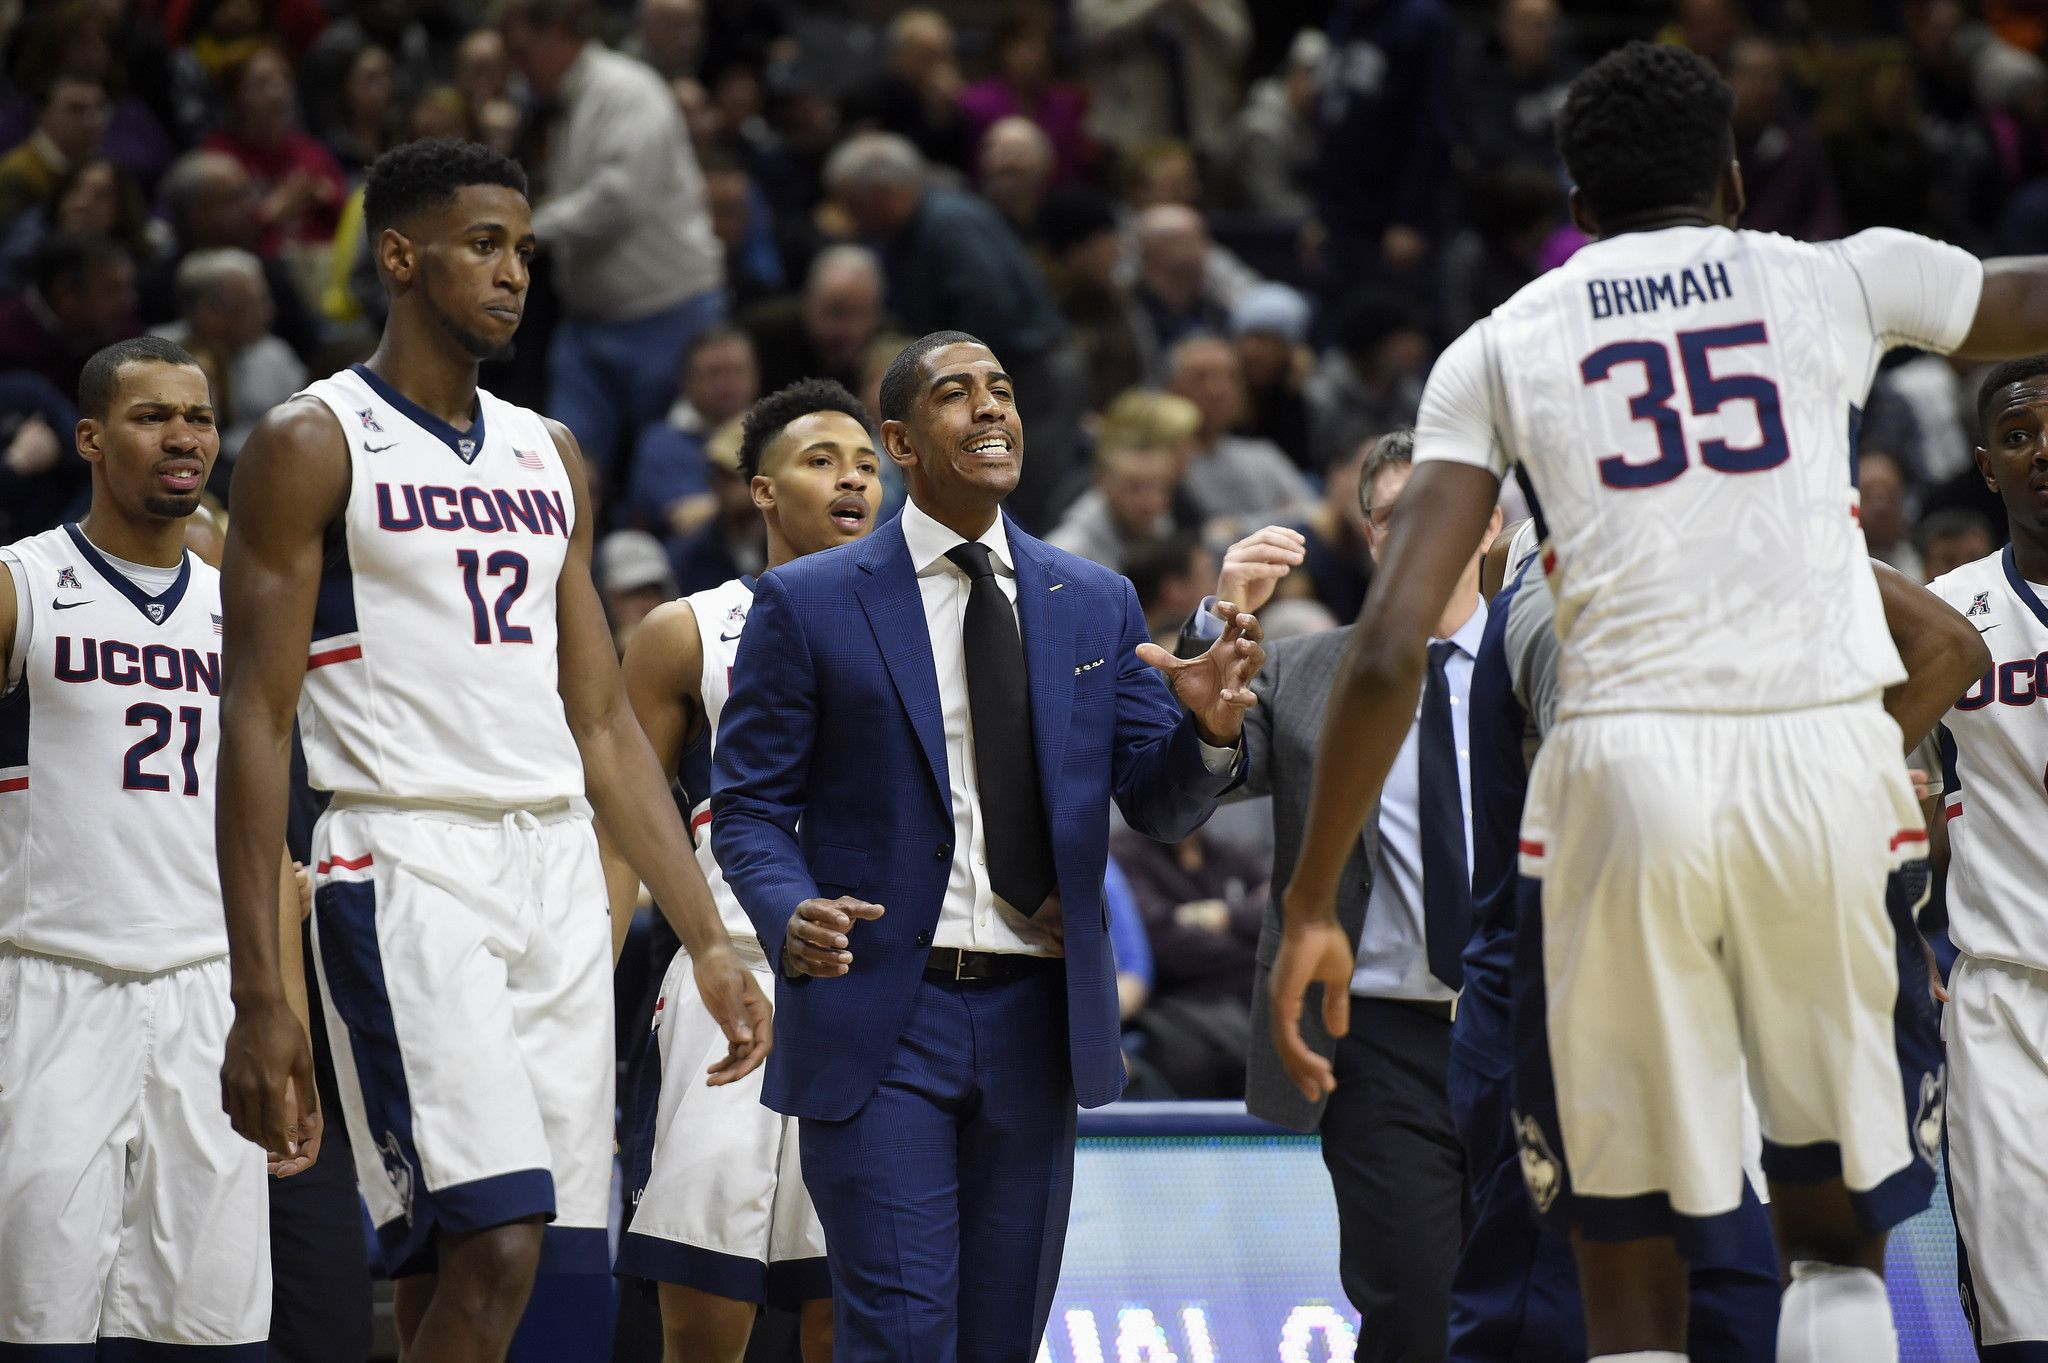 STORRS The word for UConn 's win over Tulsa on Saturday